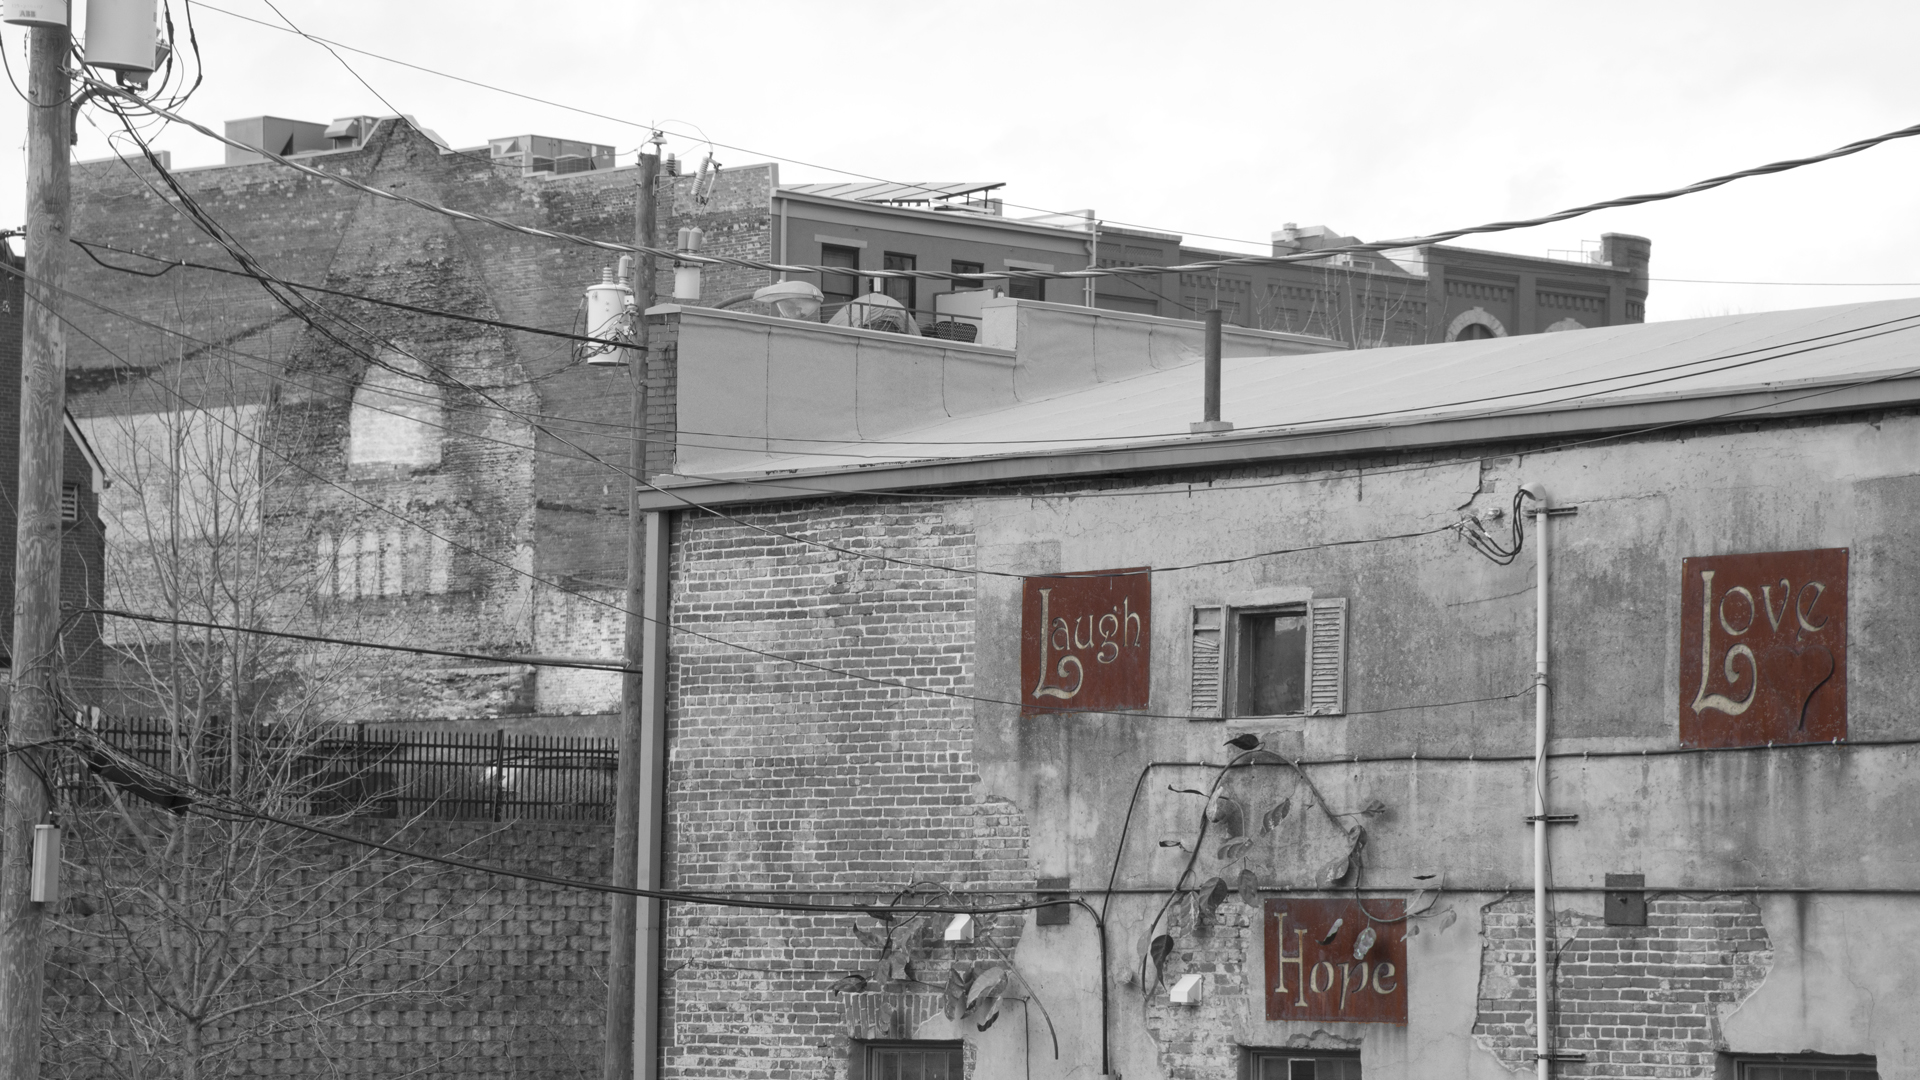 I love the ghost of the old chapel that was exposed when they demolished an old warehouse.